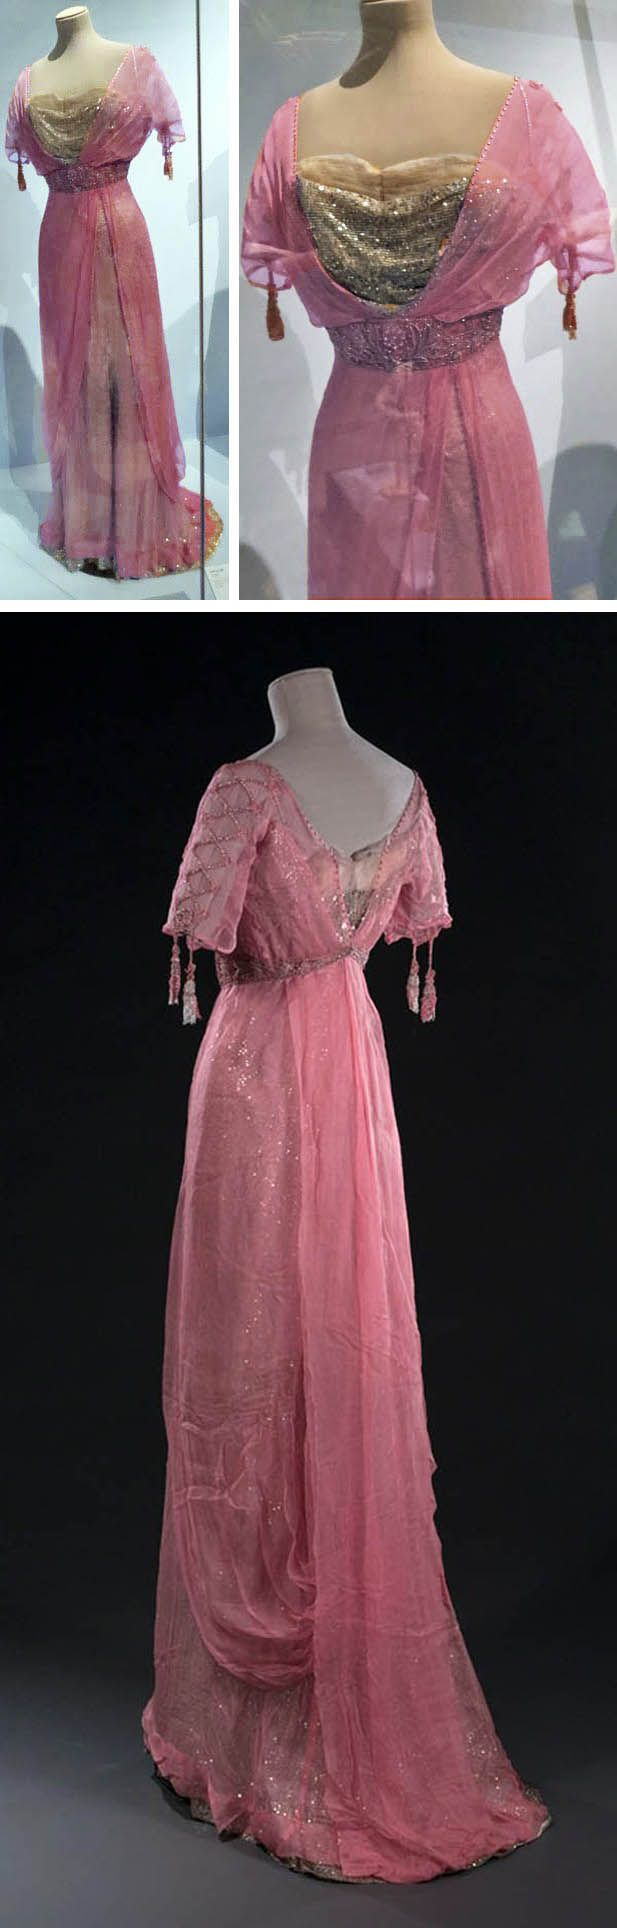 Evening gown, early 20th century. Pink chiffon and ivory tulle embroidered with sequins, beads, & rhinestones on a background of ivory silk satin. Musée Galliera at an exhibit at the Carnavalet Museum. Photos by Stéphane Piera/ Roger-Viollet via La Vie de Lilie blog; mote-historie.tumblr.com; Lady Marlo Leon blog